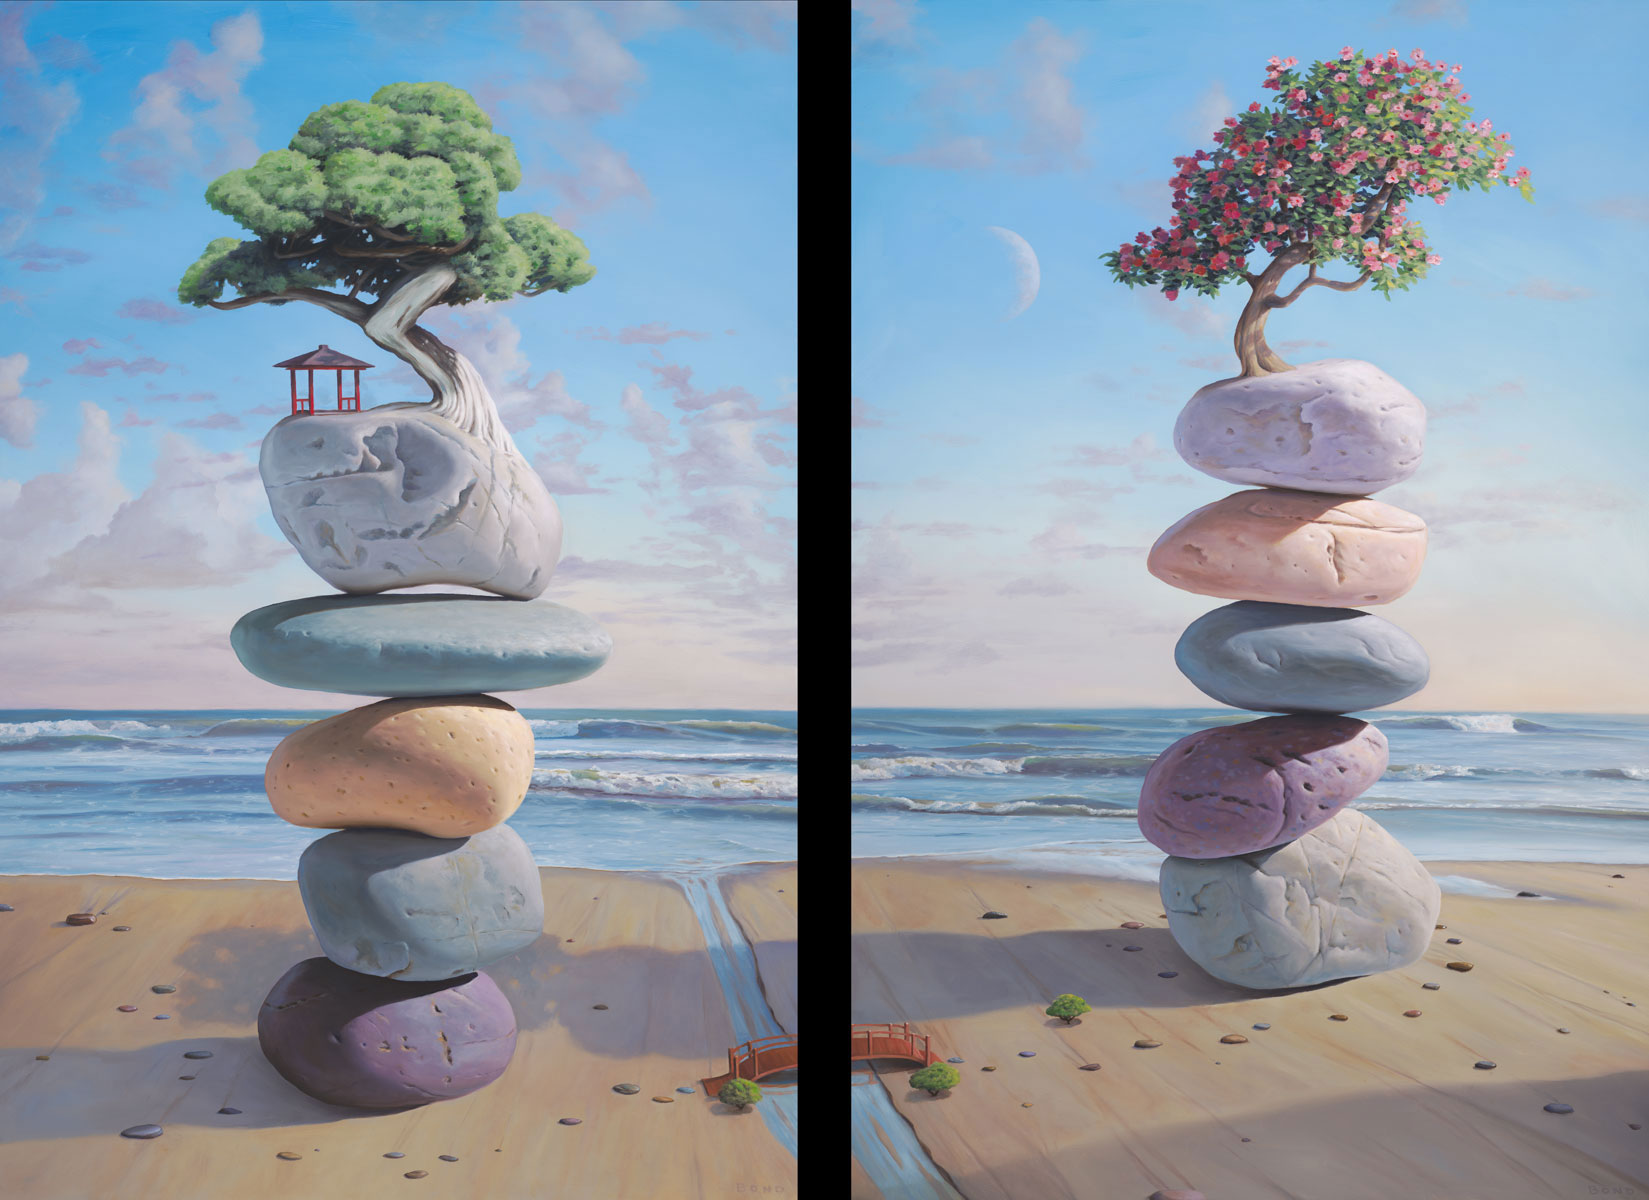 The Lovers,  diptych painting of stacked rocks connected by a bridge over a stream, painting with male and female essence, stacked stones with shelter and flowers on tree painting about home is where the heart is, art about growth and expansion, ocean, sea, sand, wave, water, rock, stone, balance, art with cairn balancing stones, bridge, path, tree, bonsai, beach, manifest, cherry blossom, cherry tree, moon, soulful uplifting inspirational art, soul stirring illusion art, romantic art,  surrealism, surreal art, dreamlike imagery, fanciful art, fantasy art, dreamscape visual, metaphysical art, spiritual painting, metaphysical painting, spiritual art, whimsical art, whimsy art, dream art, fantastic realism art, magic realism oil painting by Paul Bond